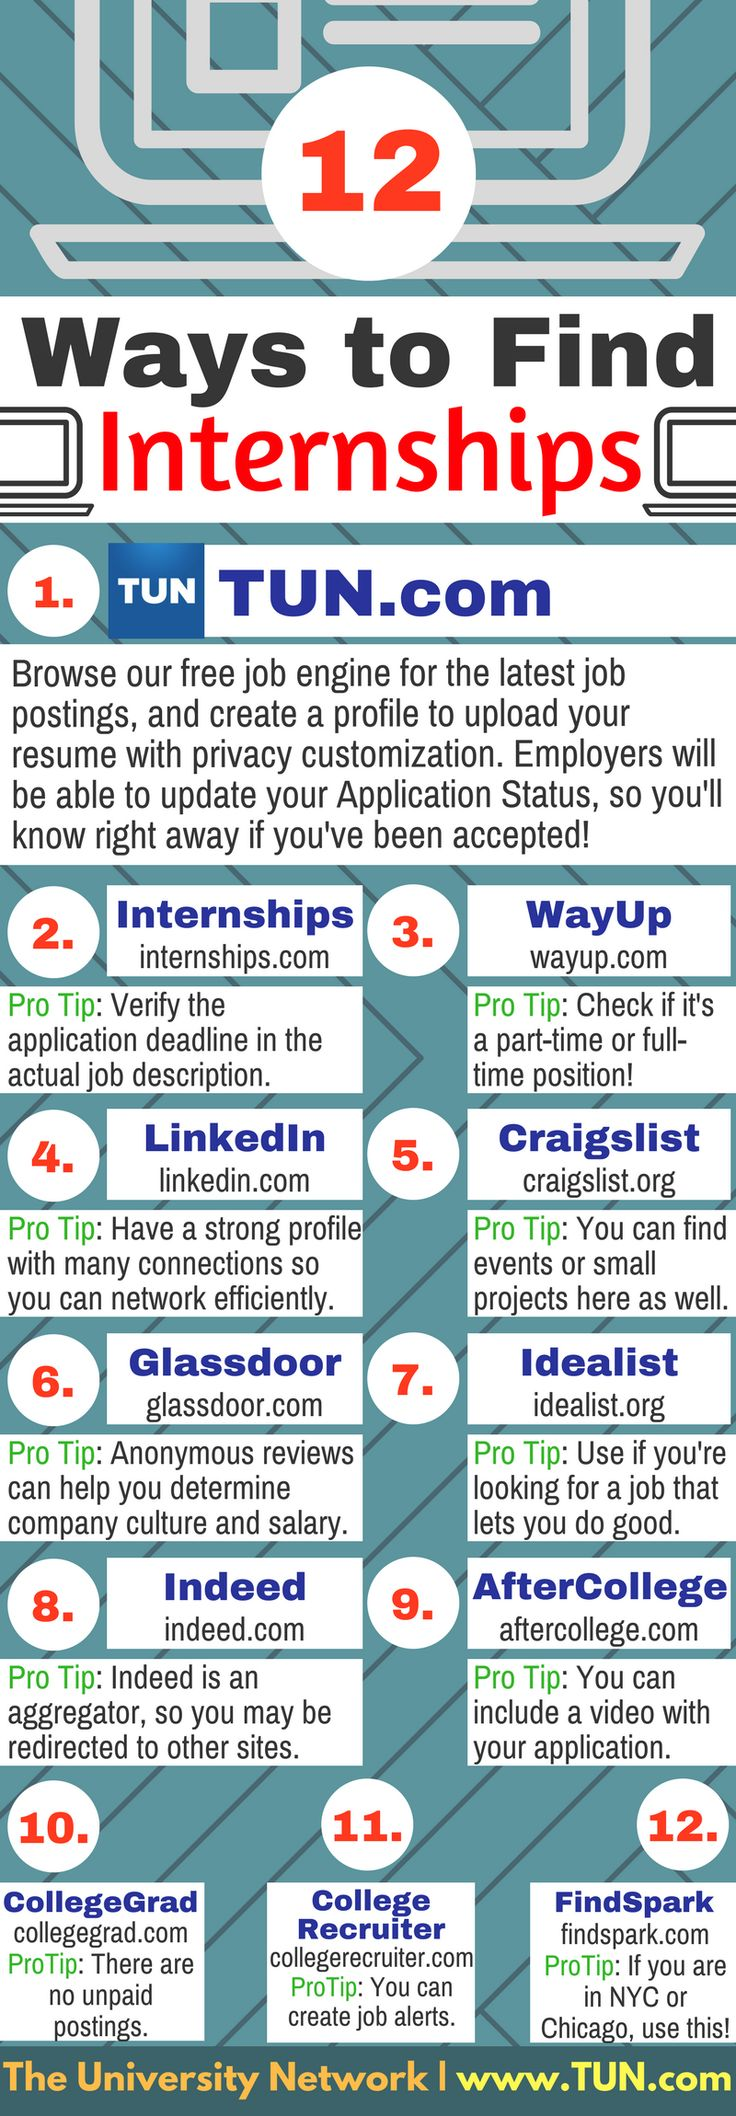 These are some of the best tools you can use to find your next internship!